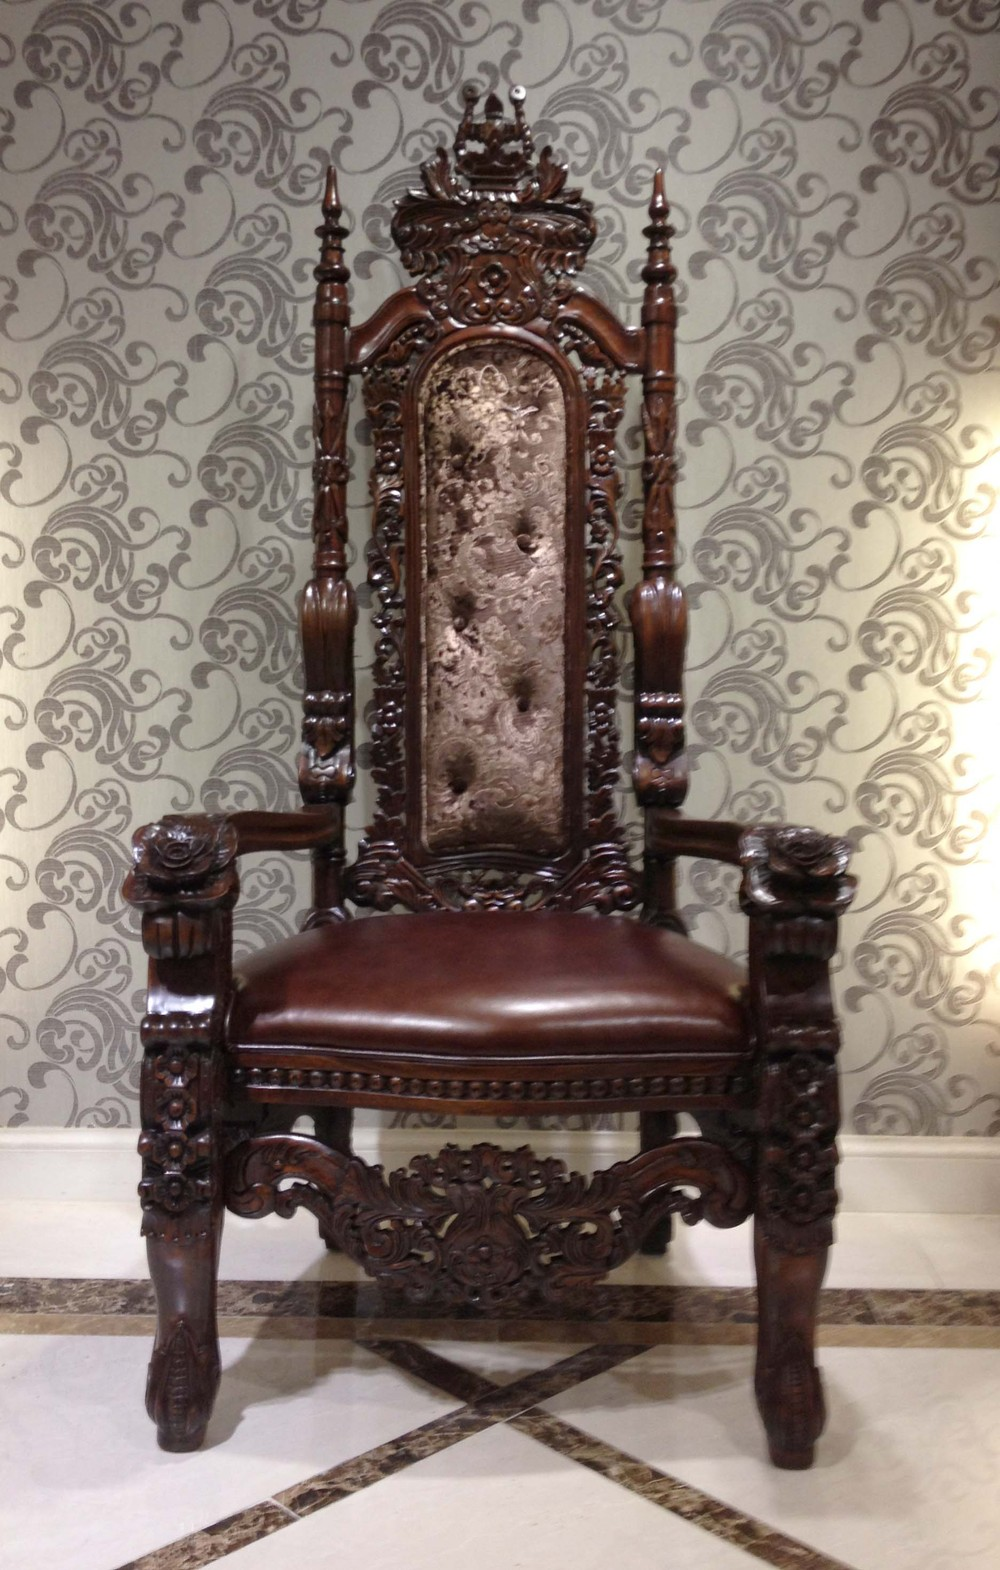 High Back Antique Sofa American Style Furniture Sofa Chair Antique Luxury Real Leather Throne Sofa Classic Hand Carved Wood Chair Bf01 Xy1008 Buy Classic Wood Frame